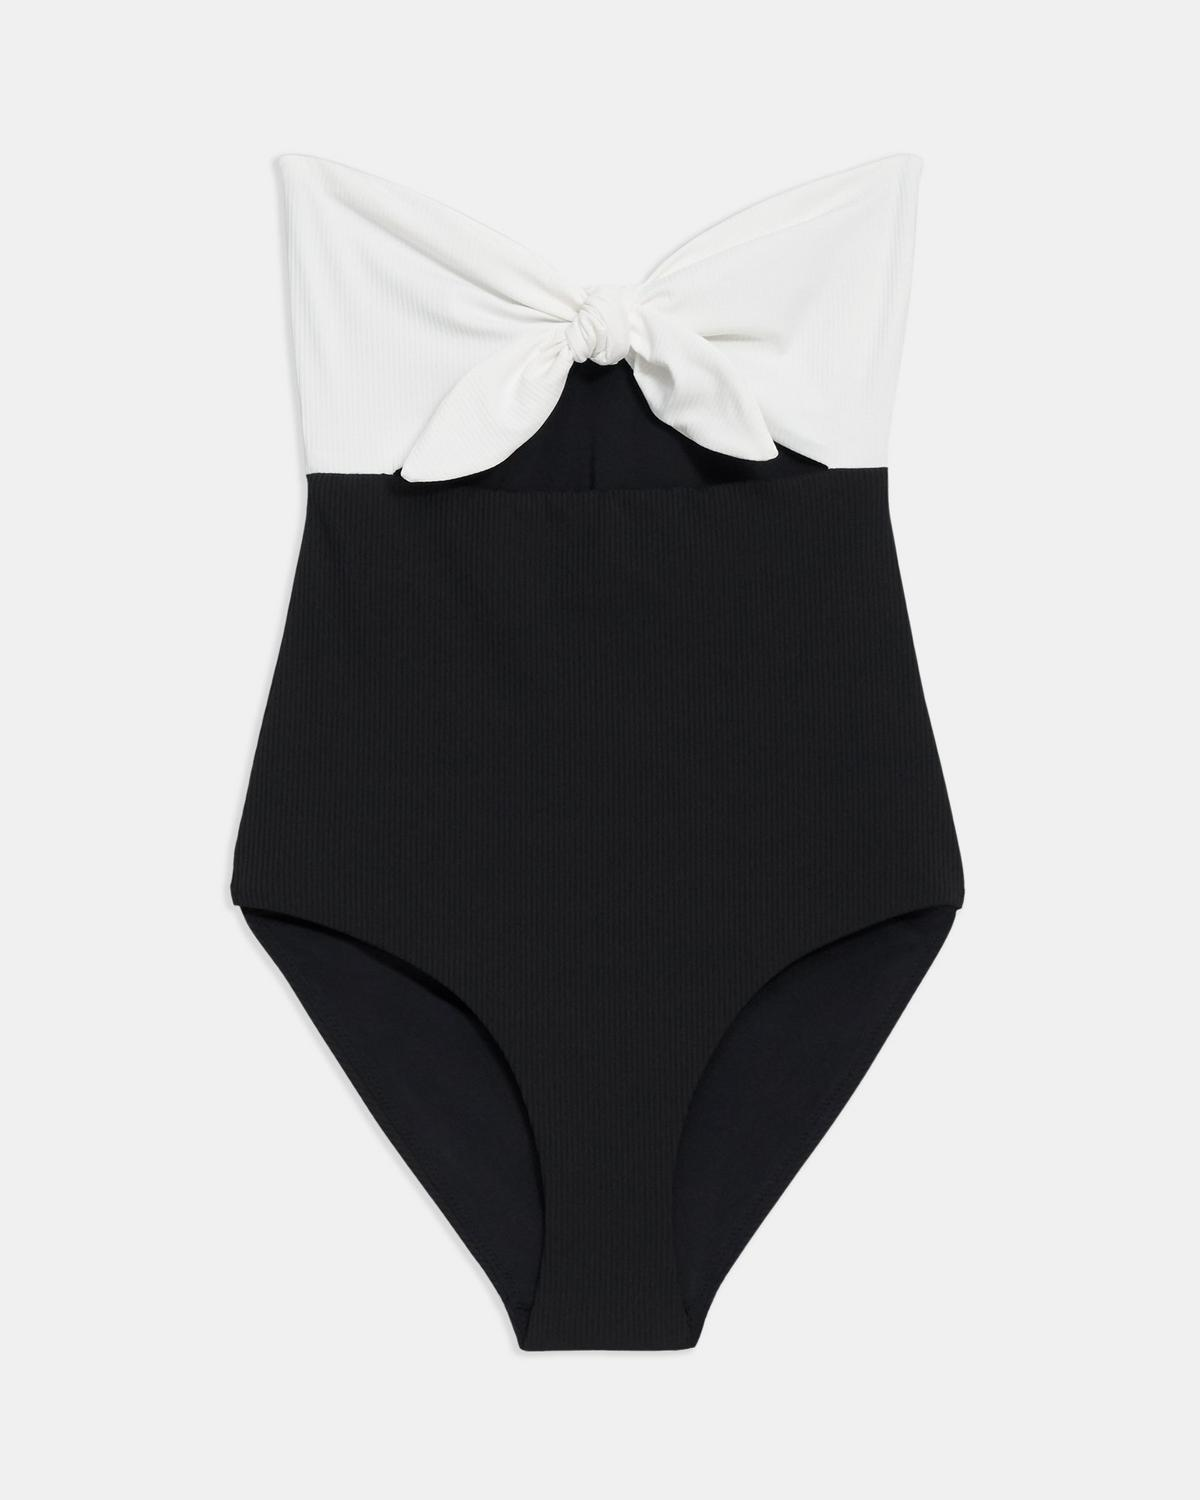 Onia x Theory Marie Swimsuit